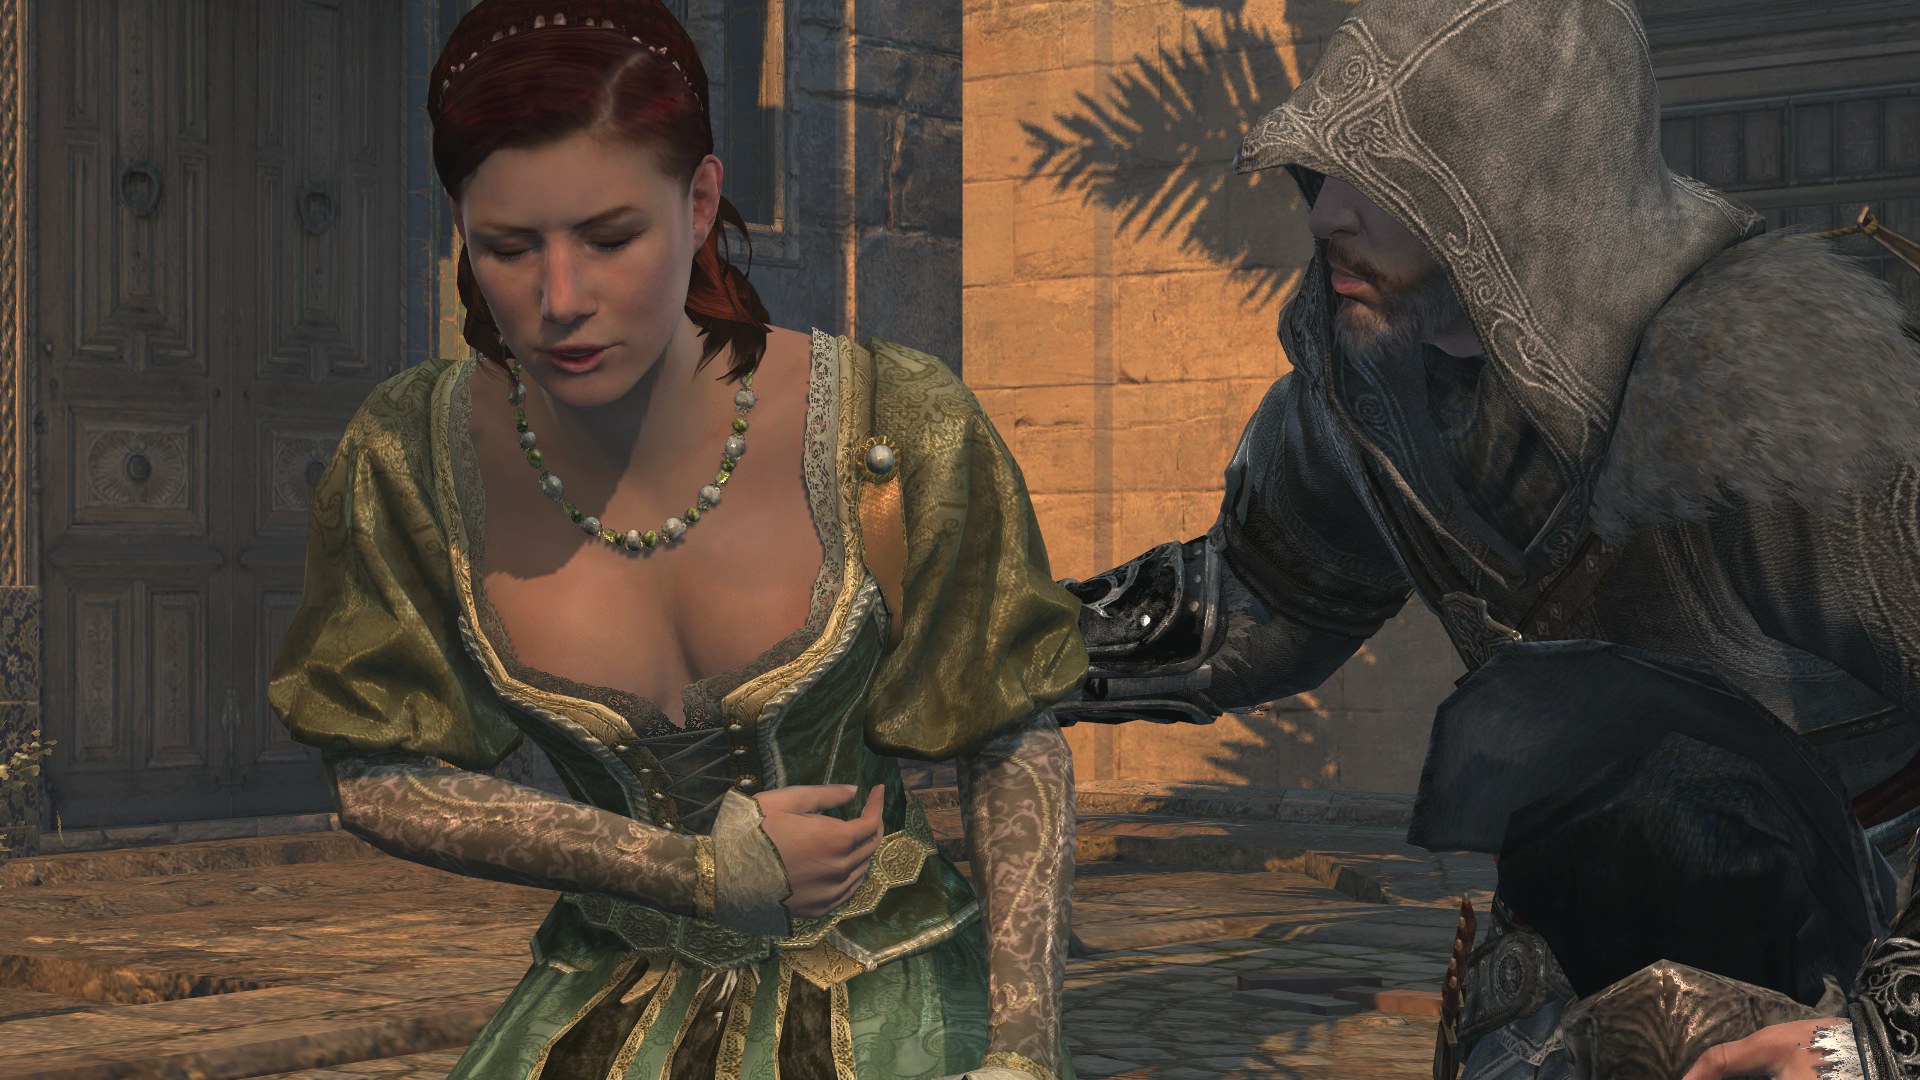 Assassins creed porn gallery nudes tube